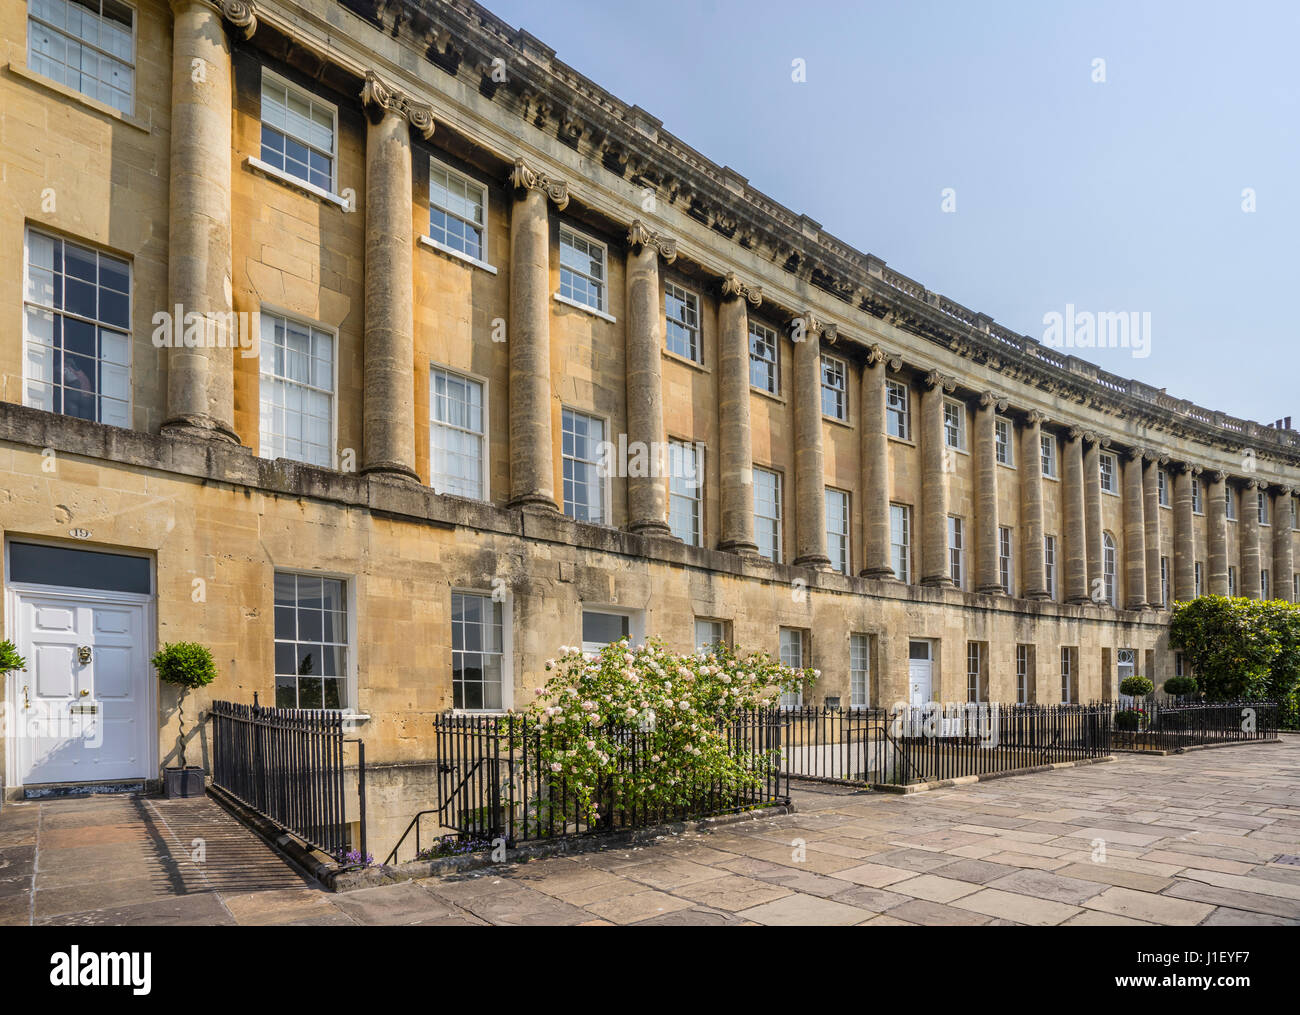 United Kingdom, Somerset, city of Bath, the Royal Crescent, terraced houses in Georgian architecture with Ionic - Stock Image